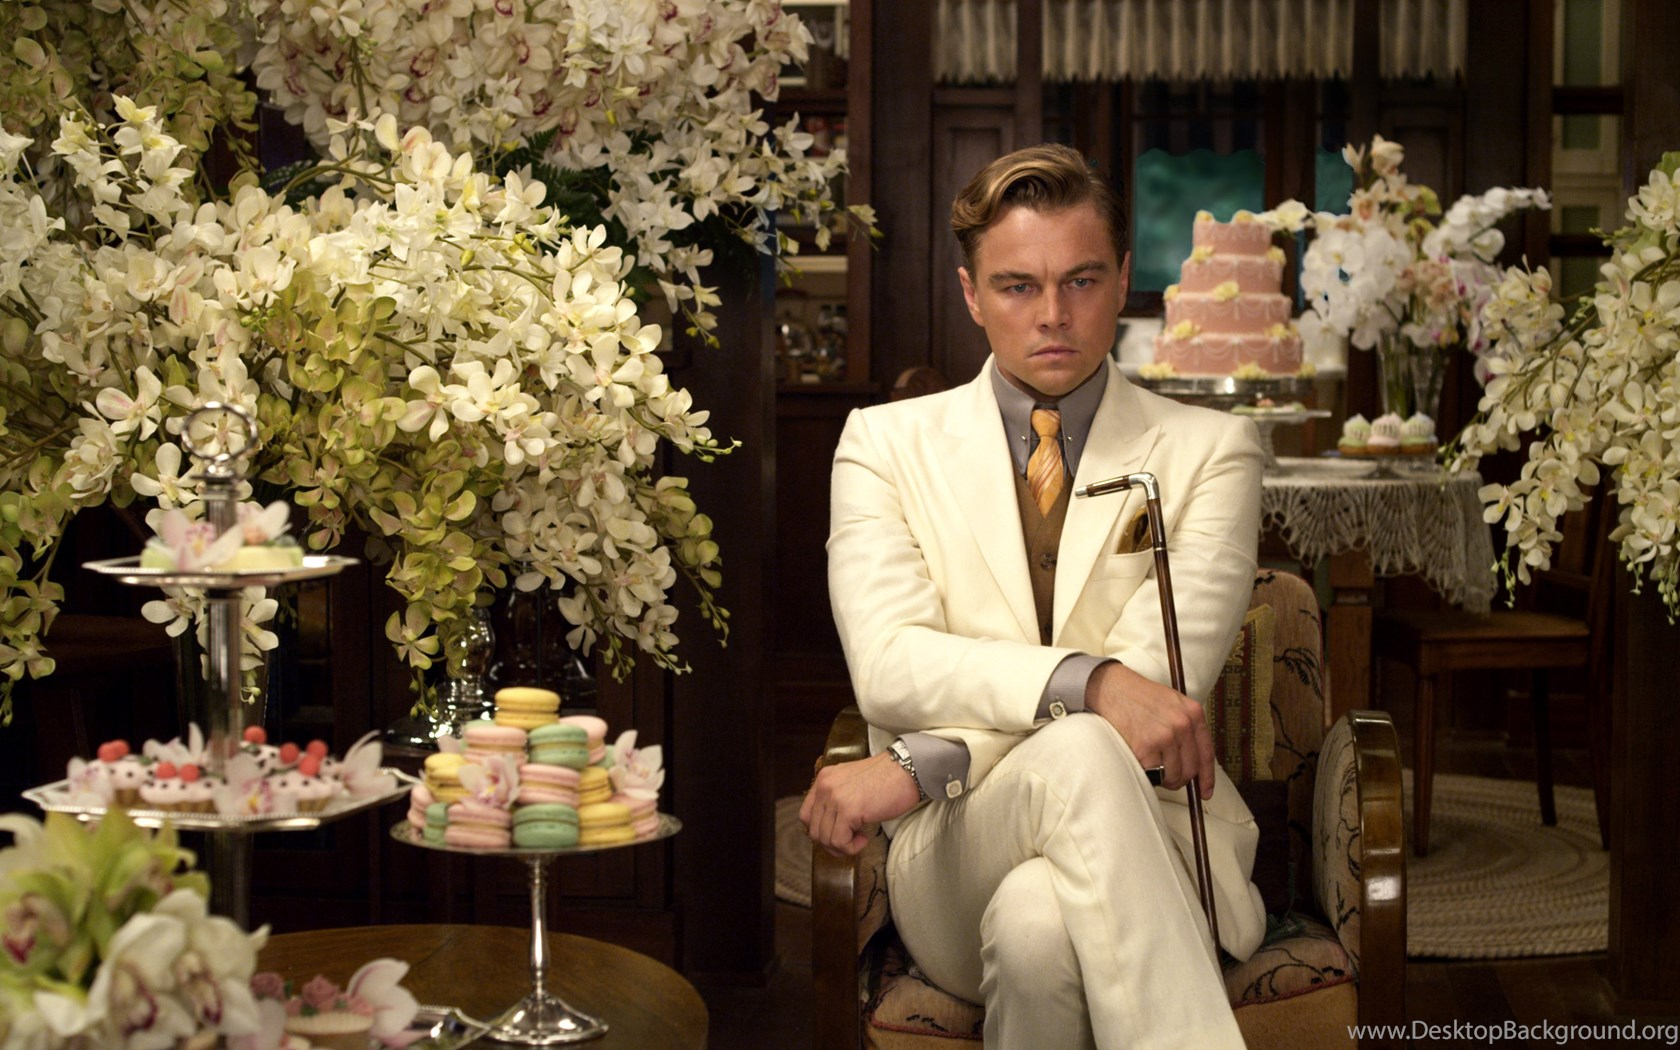 a comparison of famous figures of the roaring twenties harry houdini and jay gatsby